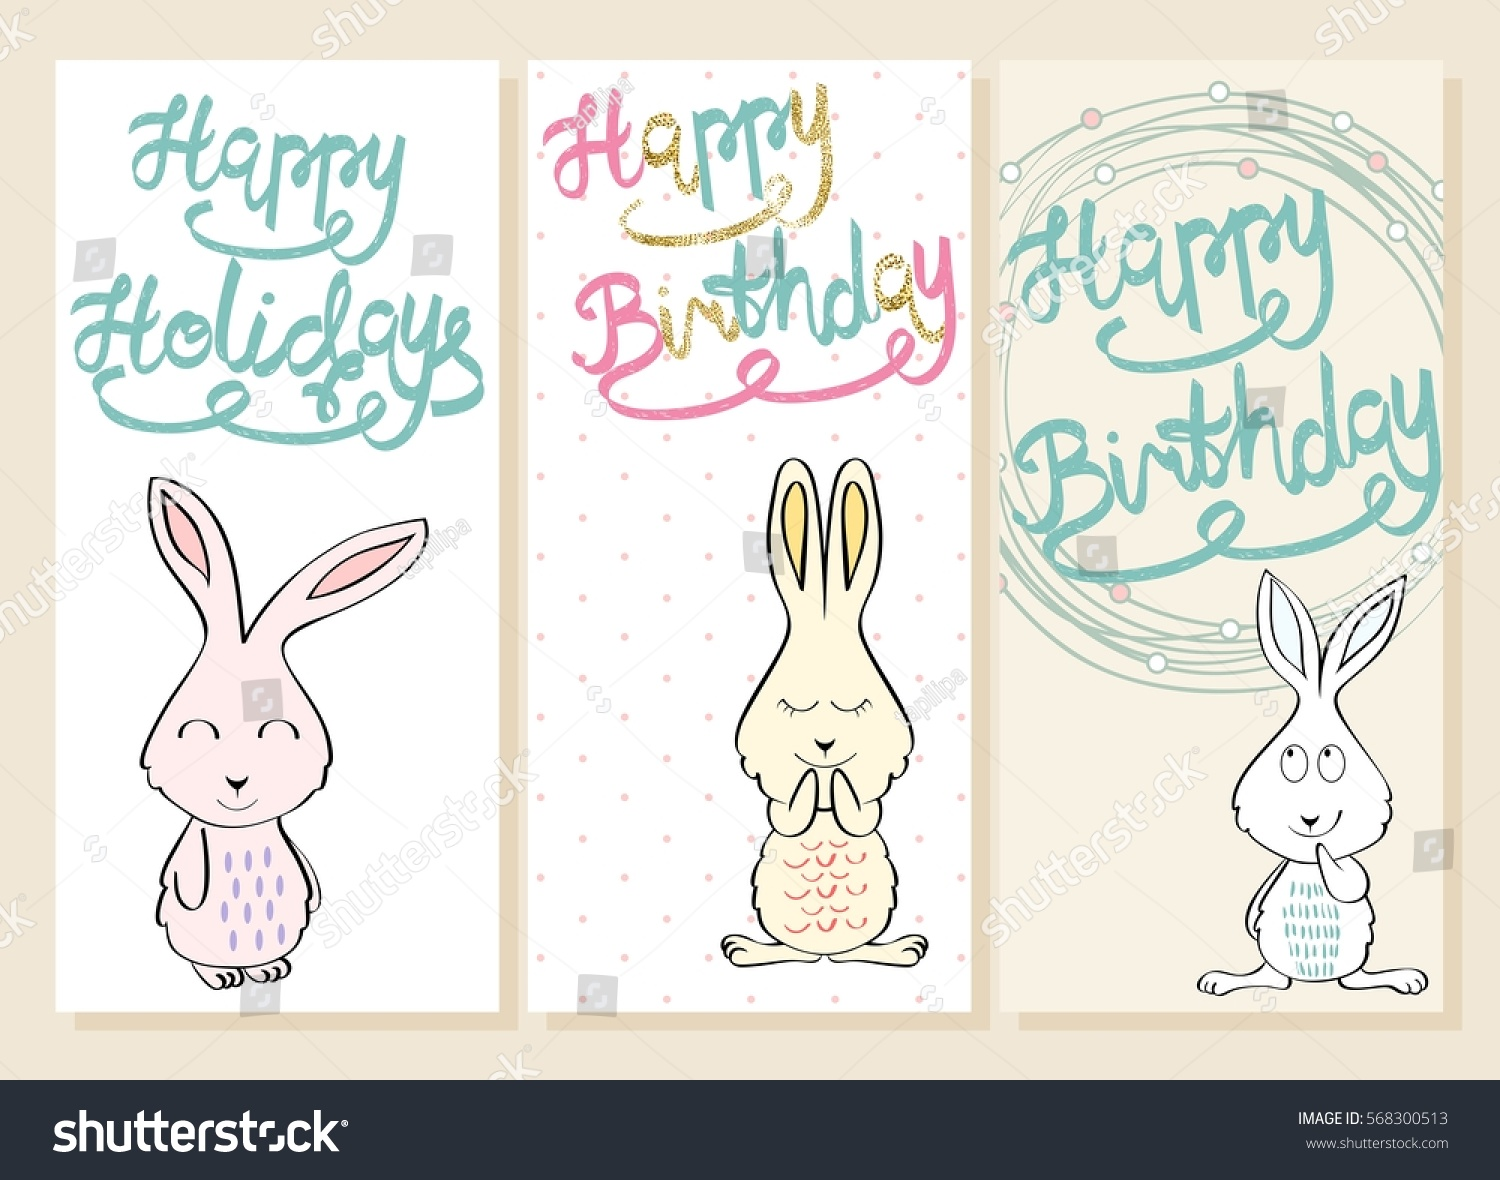 Collection Cute Artistic Cards Kids Bunny Stock Vector 568300513